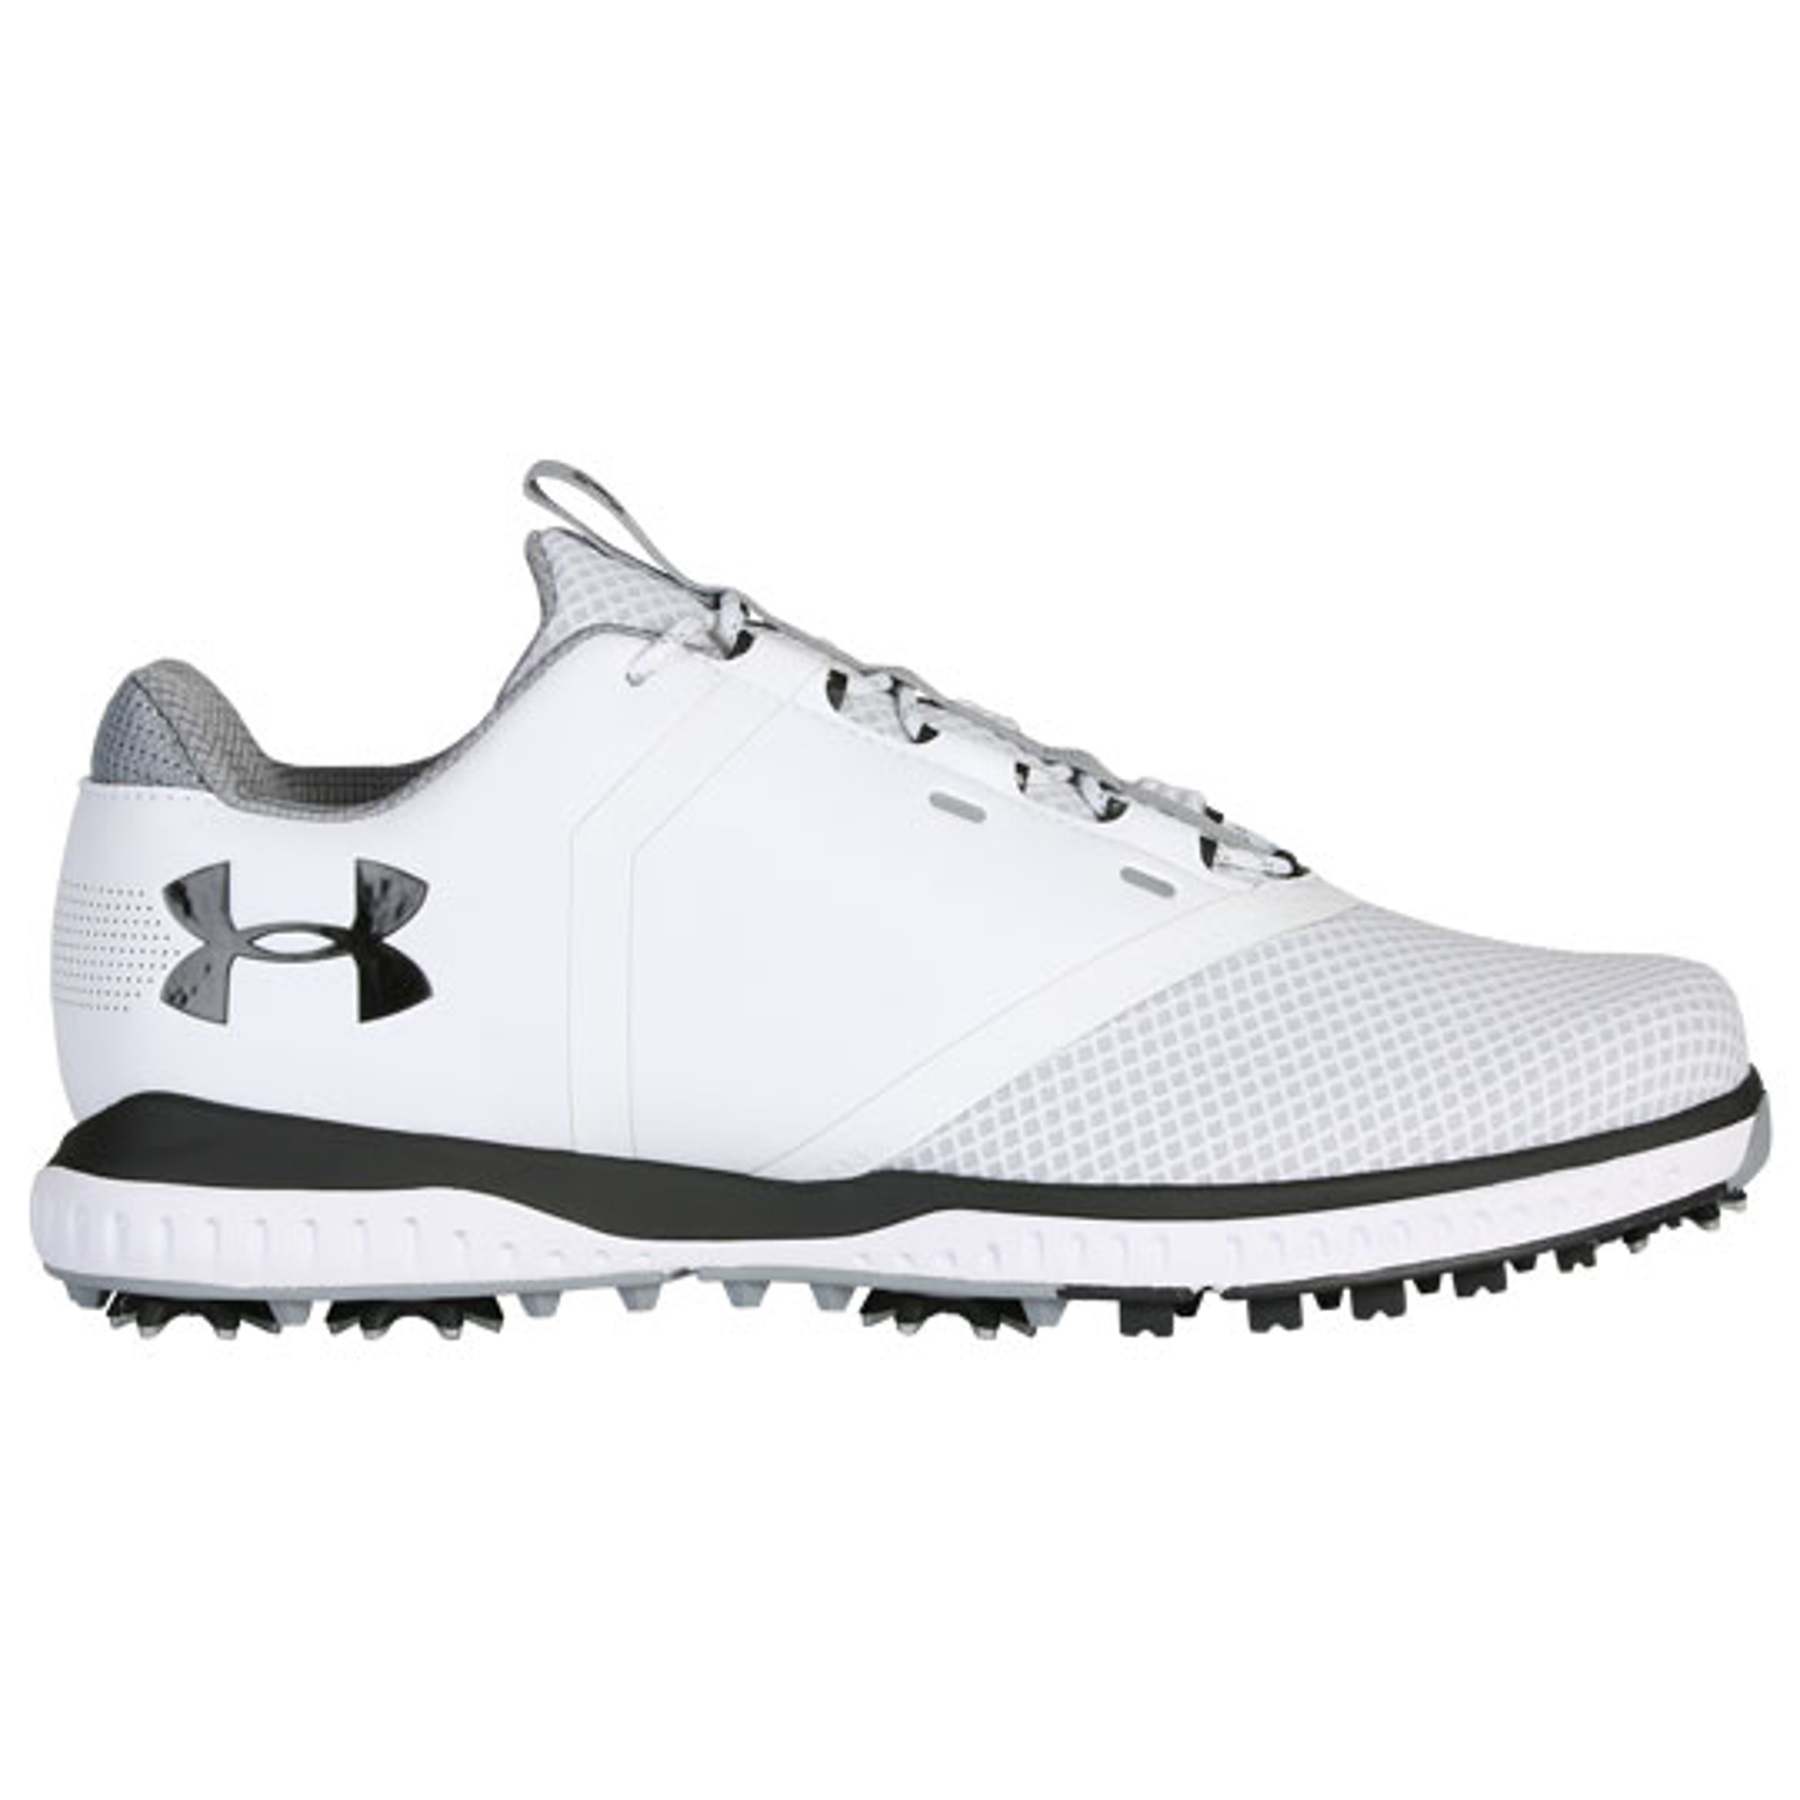 ddd28096a Under Armour Fade RST Shoes | RockBottomGolf.com